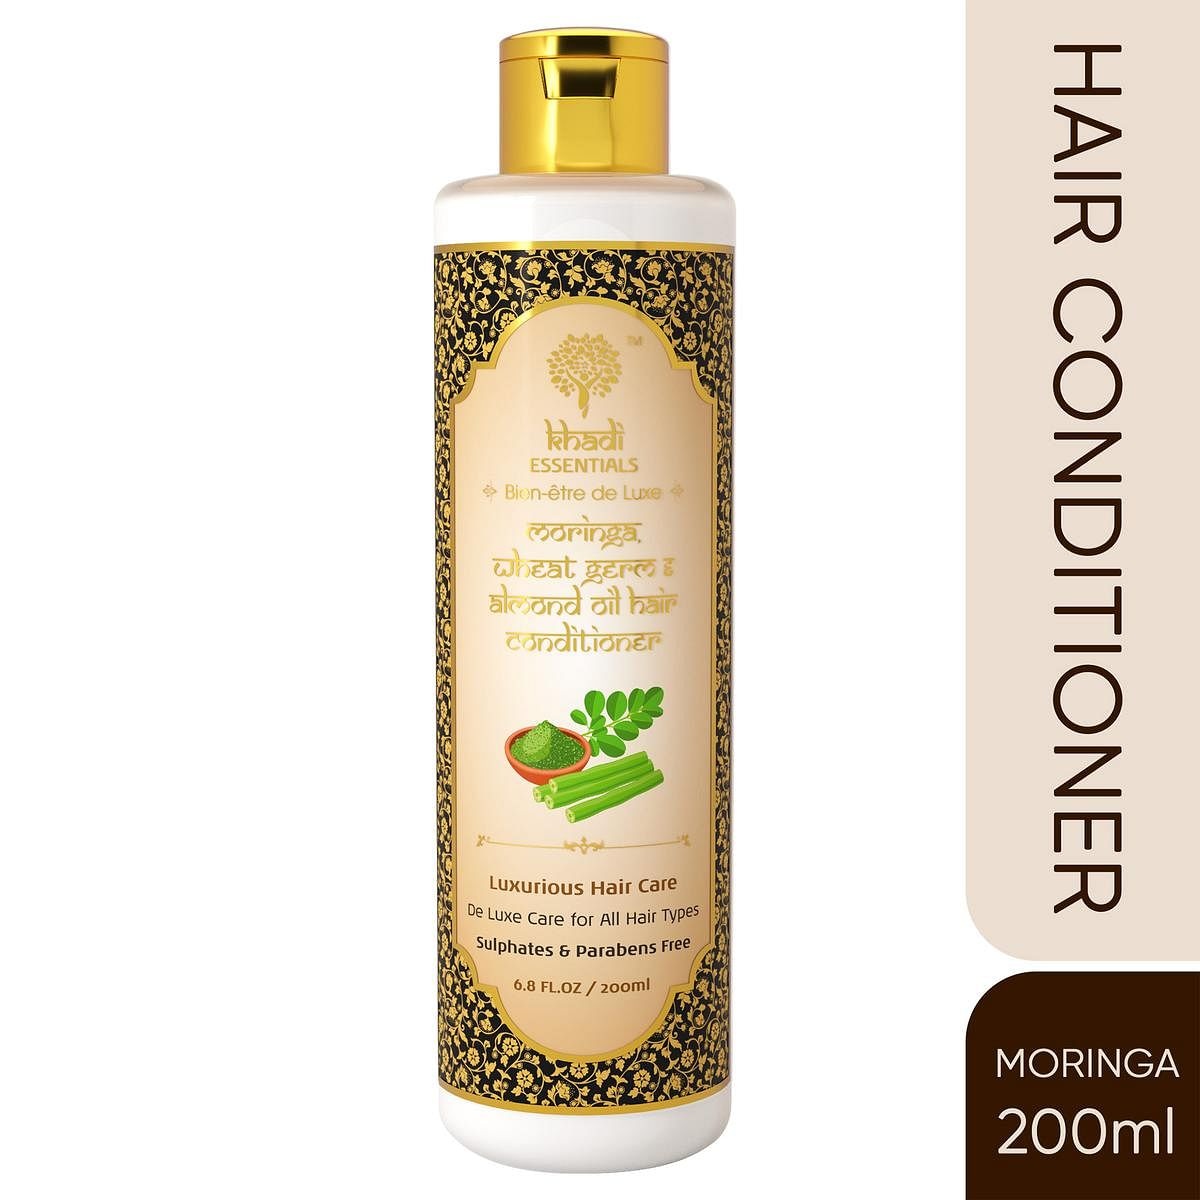 Khadi Essentials Moringa-Wheat Germ Conditioner with Almond Oil-Bay Leaf for Dry-Damaged Hair